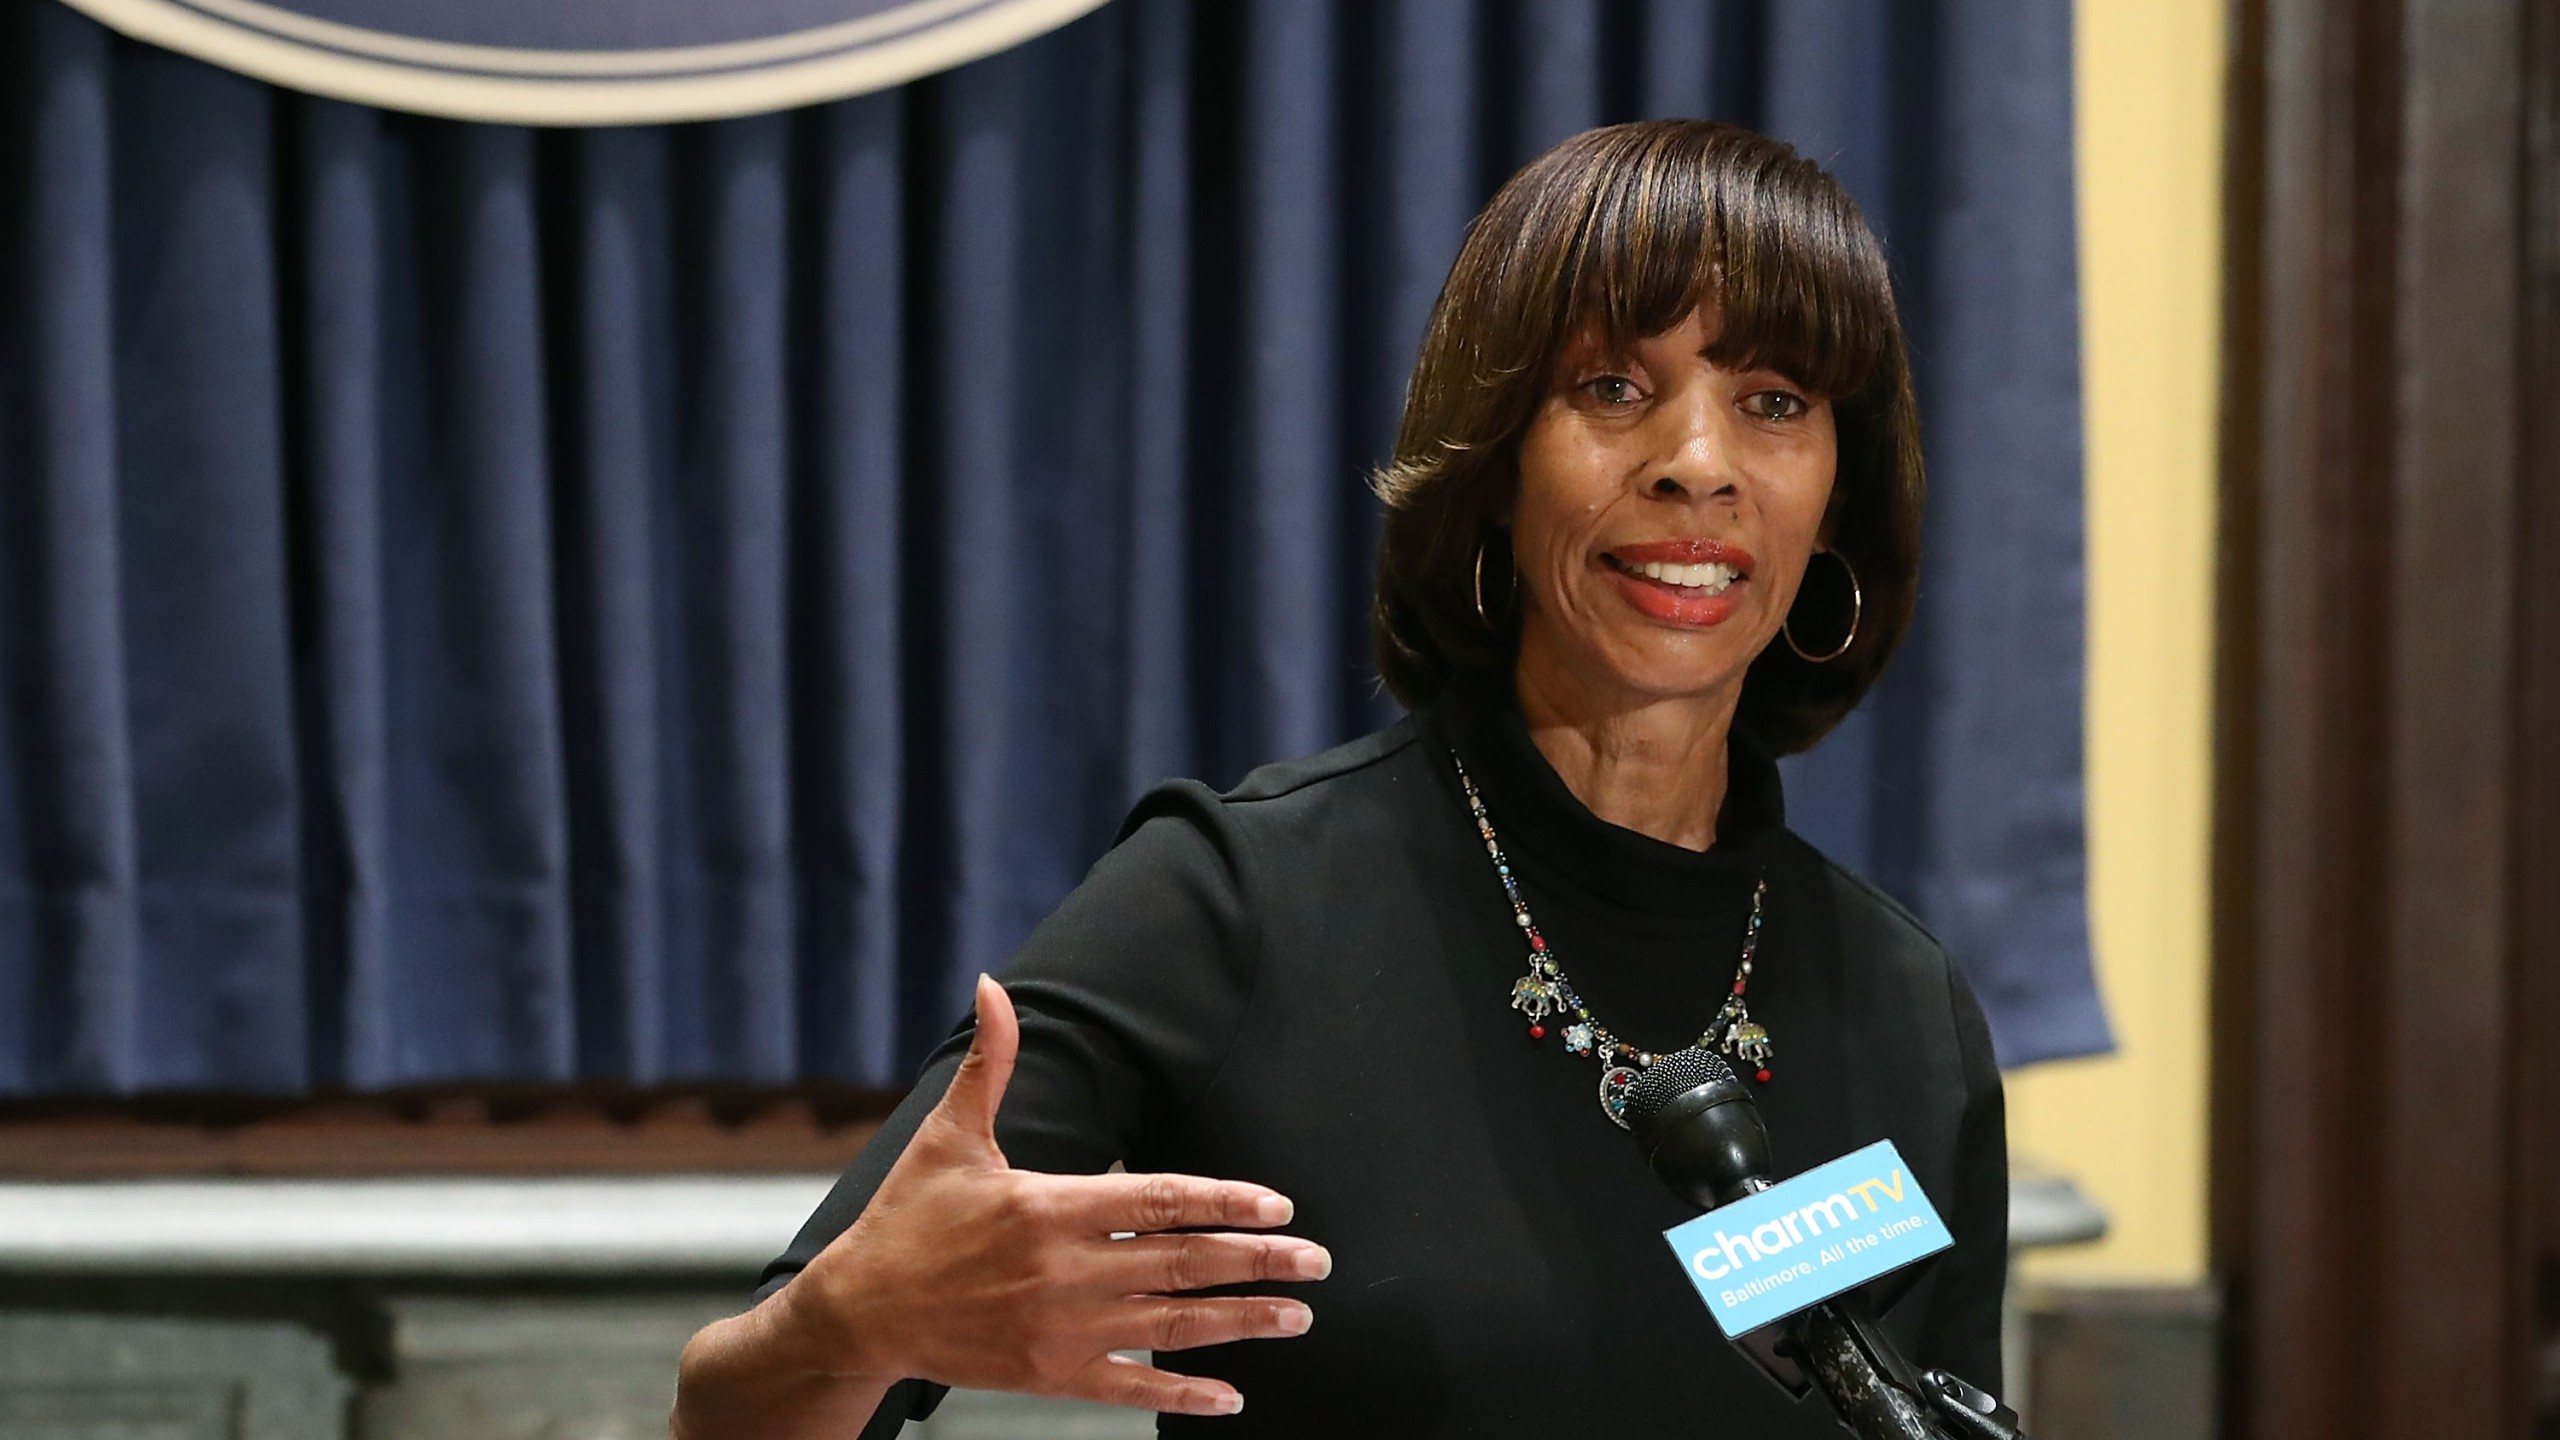 Baltimore Mayor Catherine Pugh speaks at a news conference on August 16, 2017 in Baltimore, Maryland. (Credit: Mark Wilson/Getty Images)